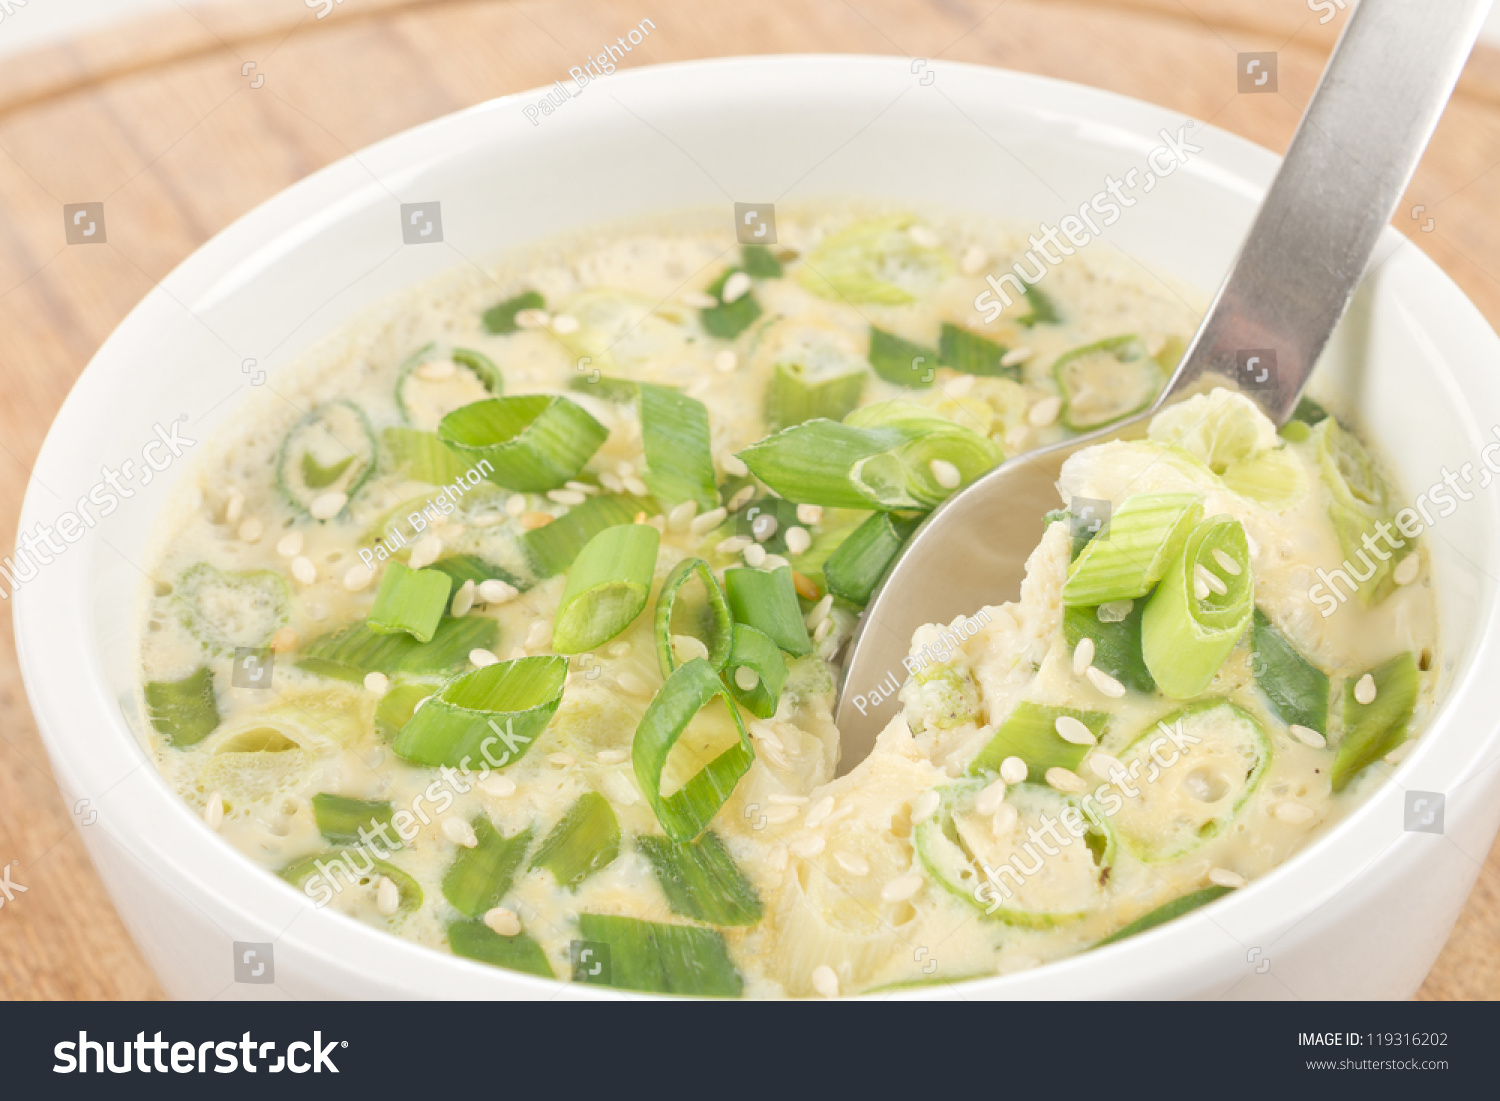 Gaeran Jim - Korean Steamed Egg Casserole With Spring Onions And Sesame Seeds. Stock Photo 119316202 : Shutterstock